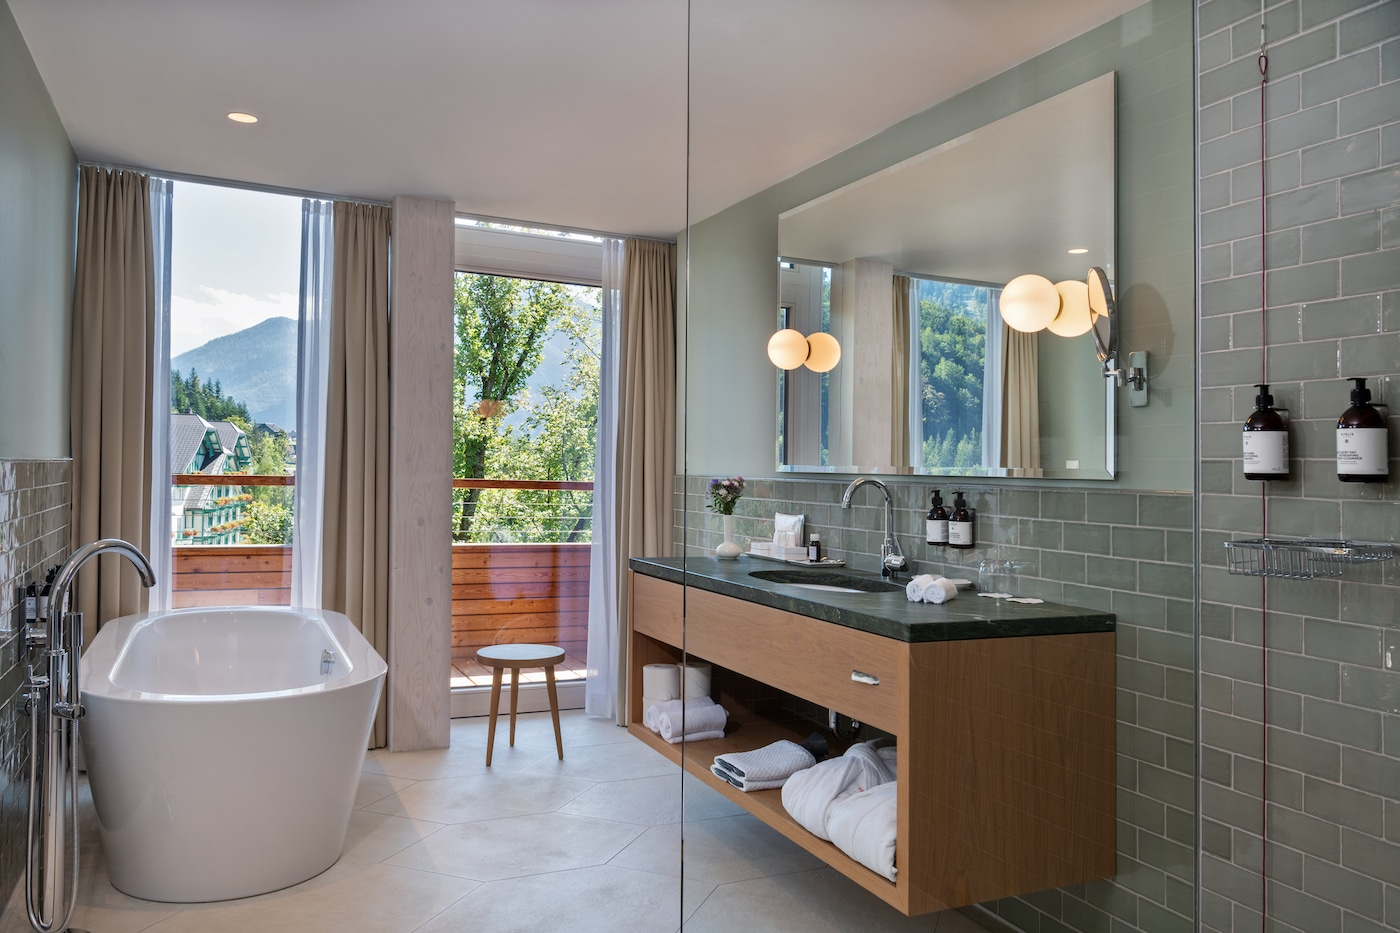 luxurious penthouse bathroom with bathtub with view of Styrian mountains